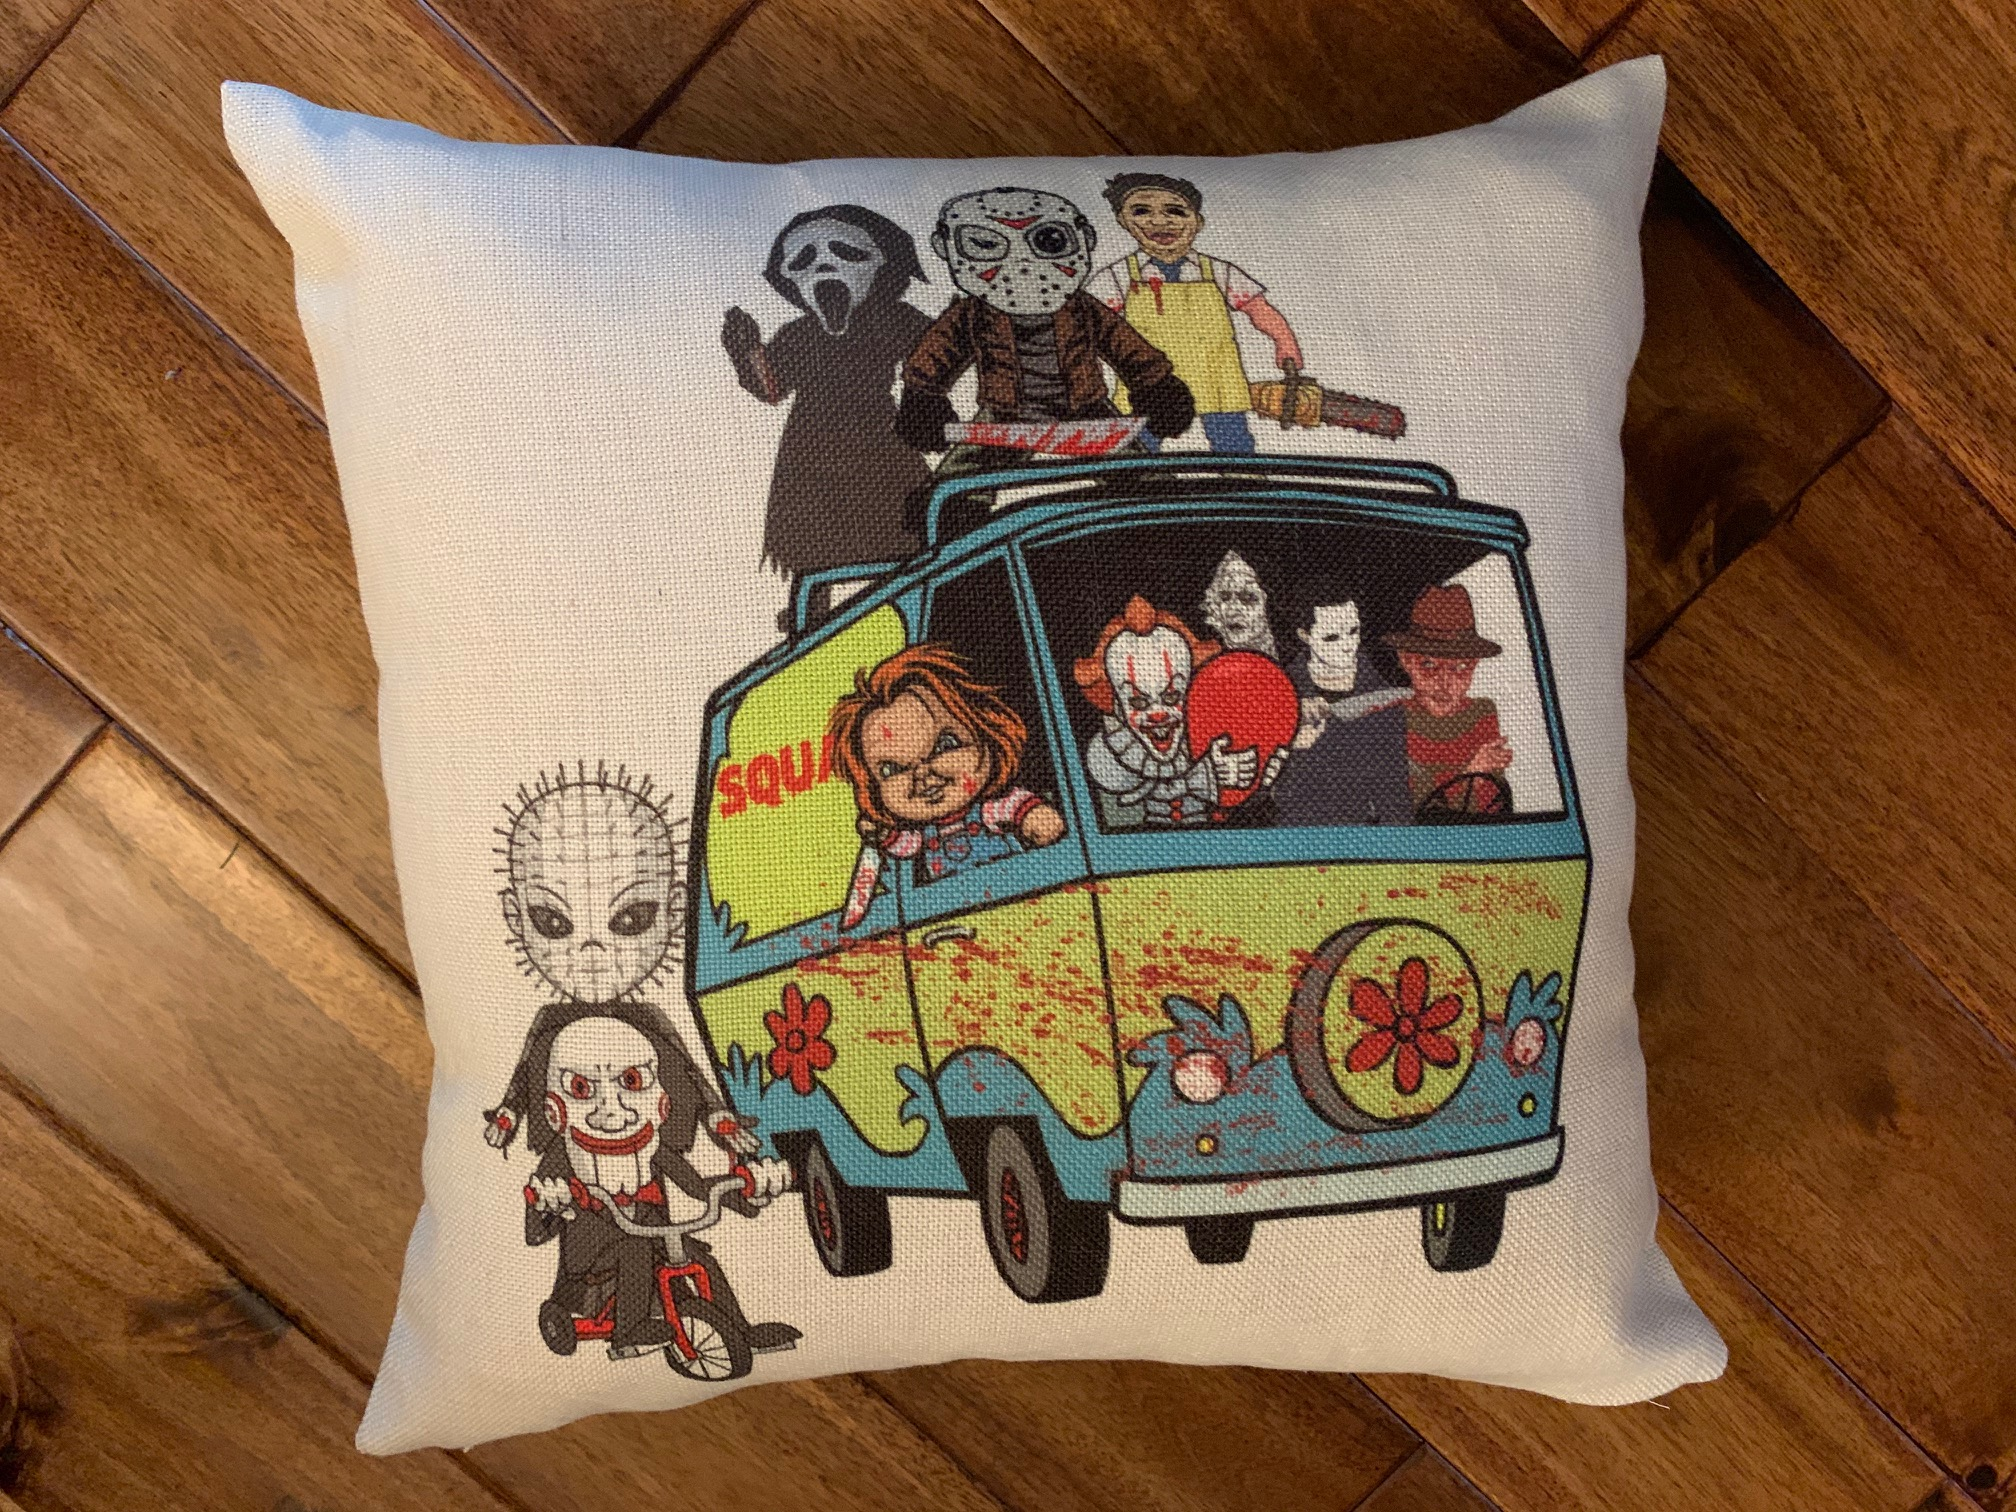 Slasher movie characters pillow